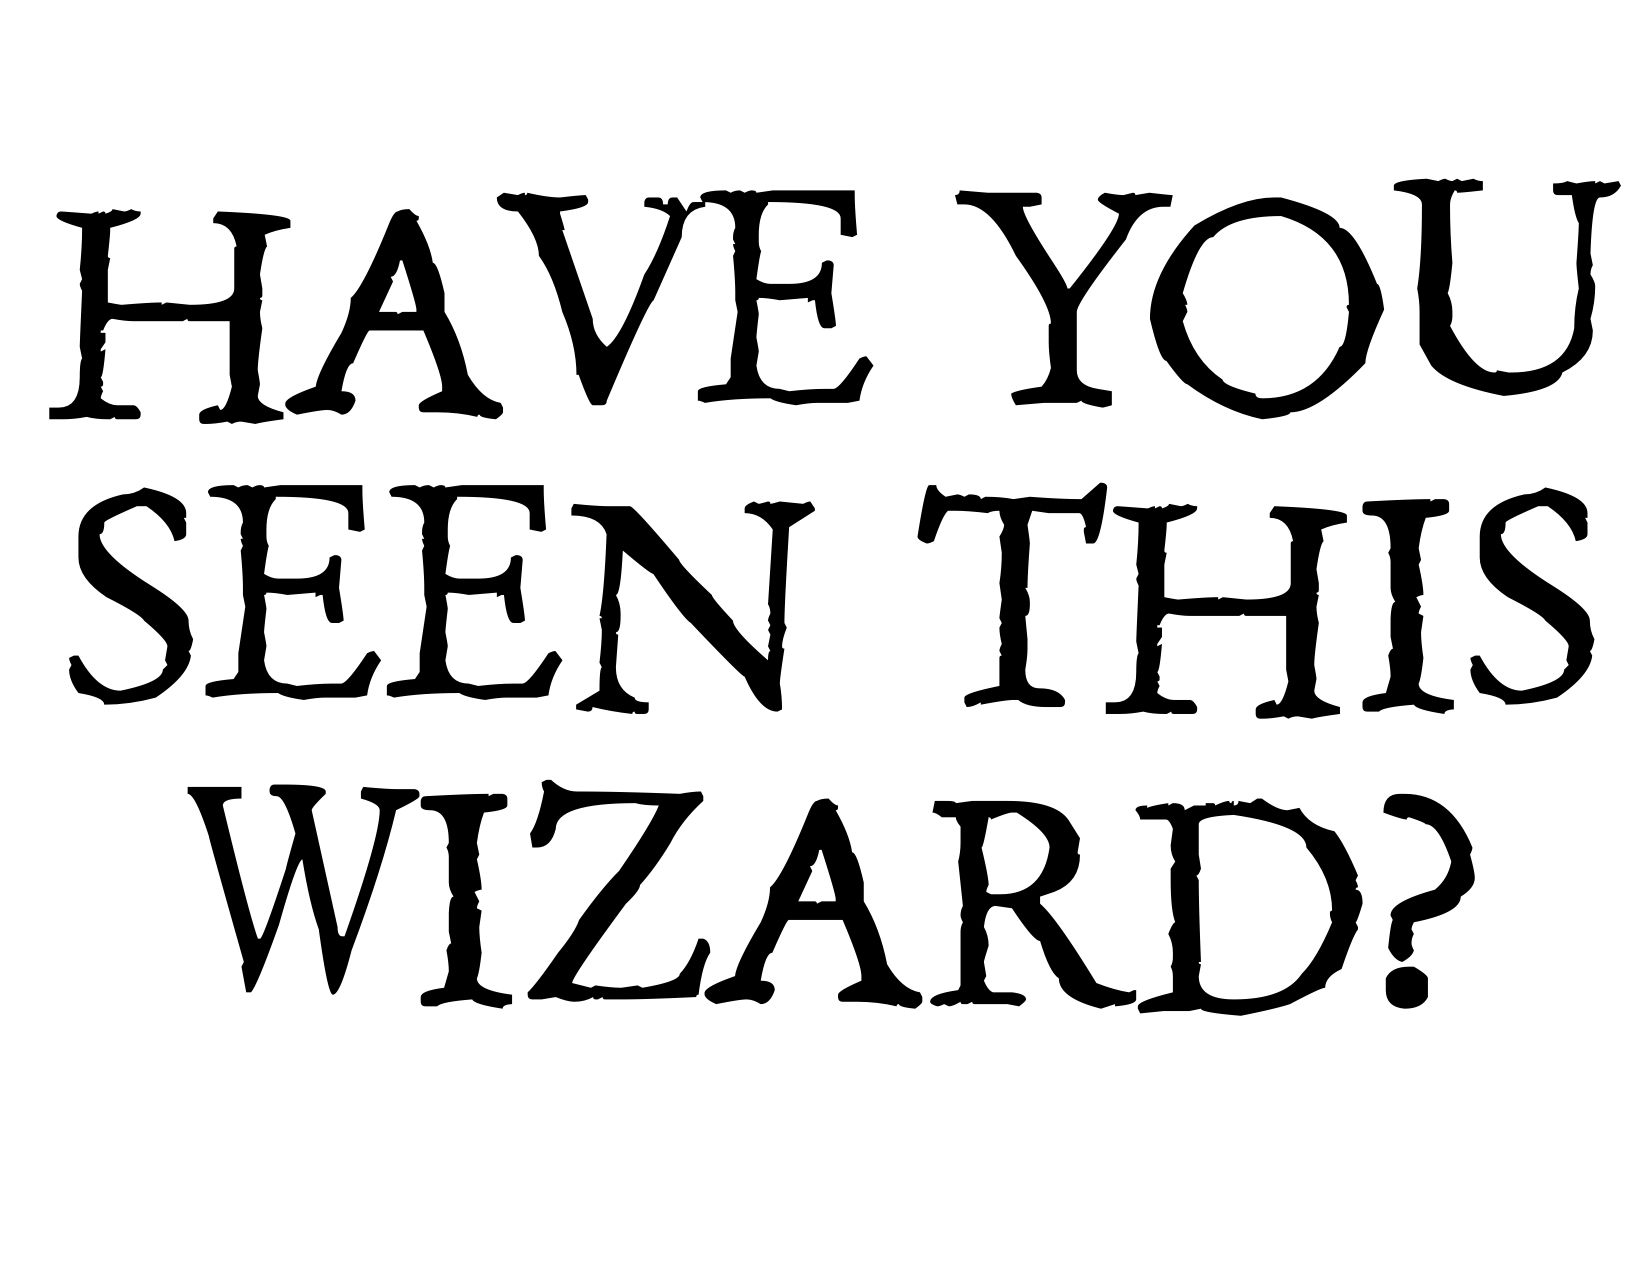 image about Have You Seen This Wizard Printable titled Harry Potter Social gathering Photobooth Straightforward Do it yourself - Paper Path Layout